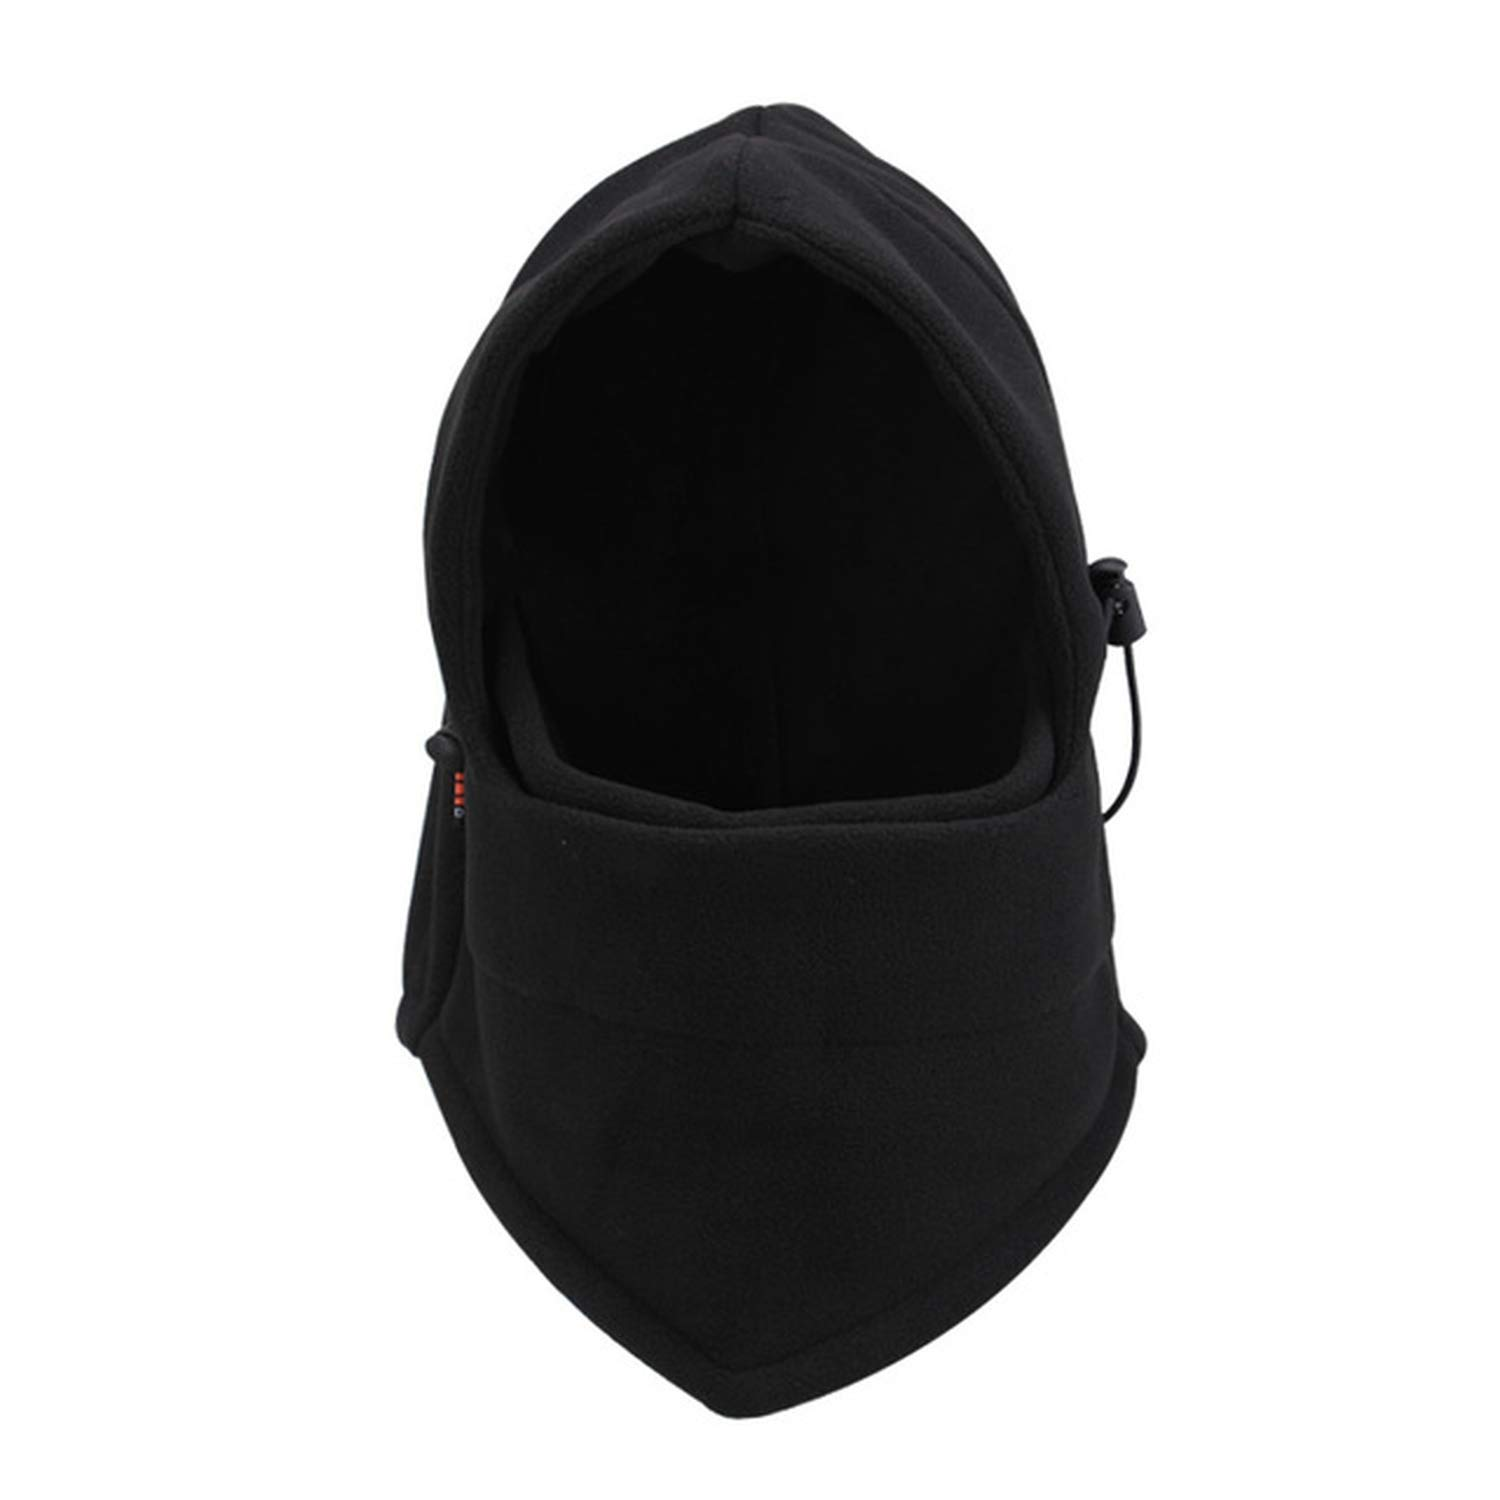 Feisette Cycling Hats Outdoor Sports Men Warm Thermal Fleece Balaclava Face Beanies Ski Bike Motorcycle Neck Warmer